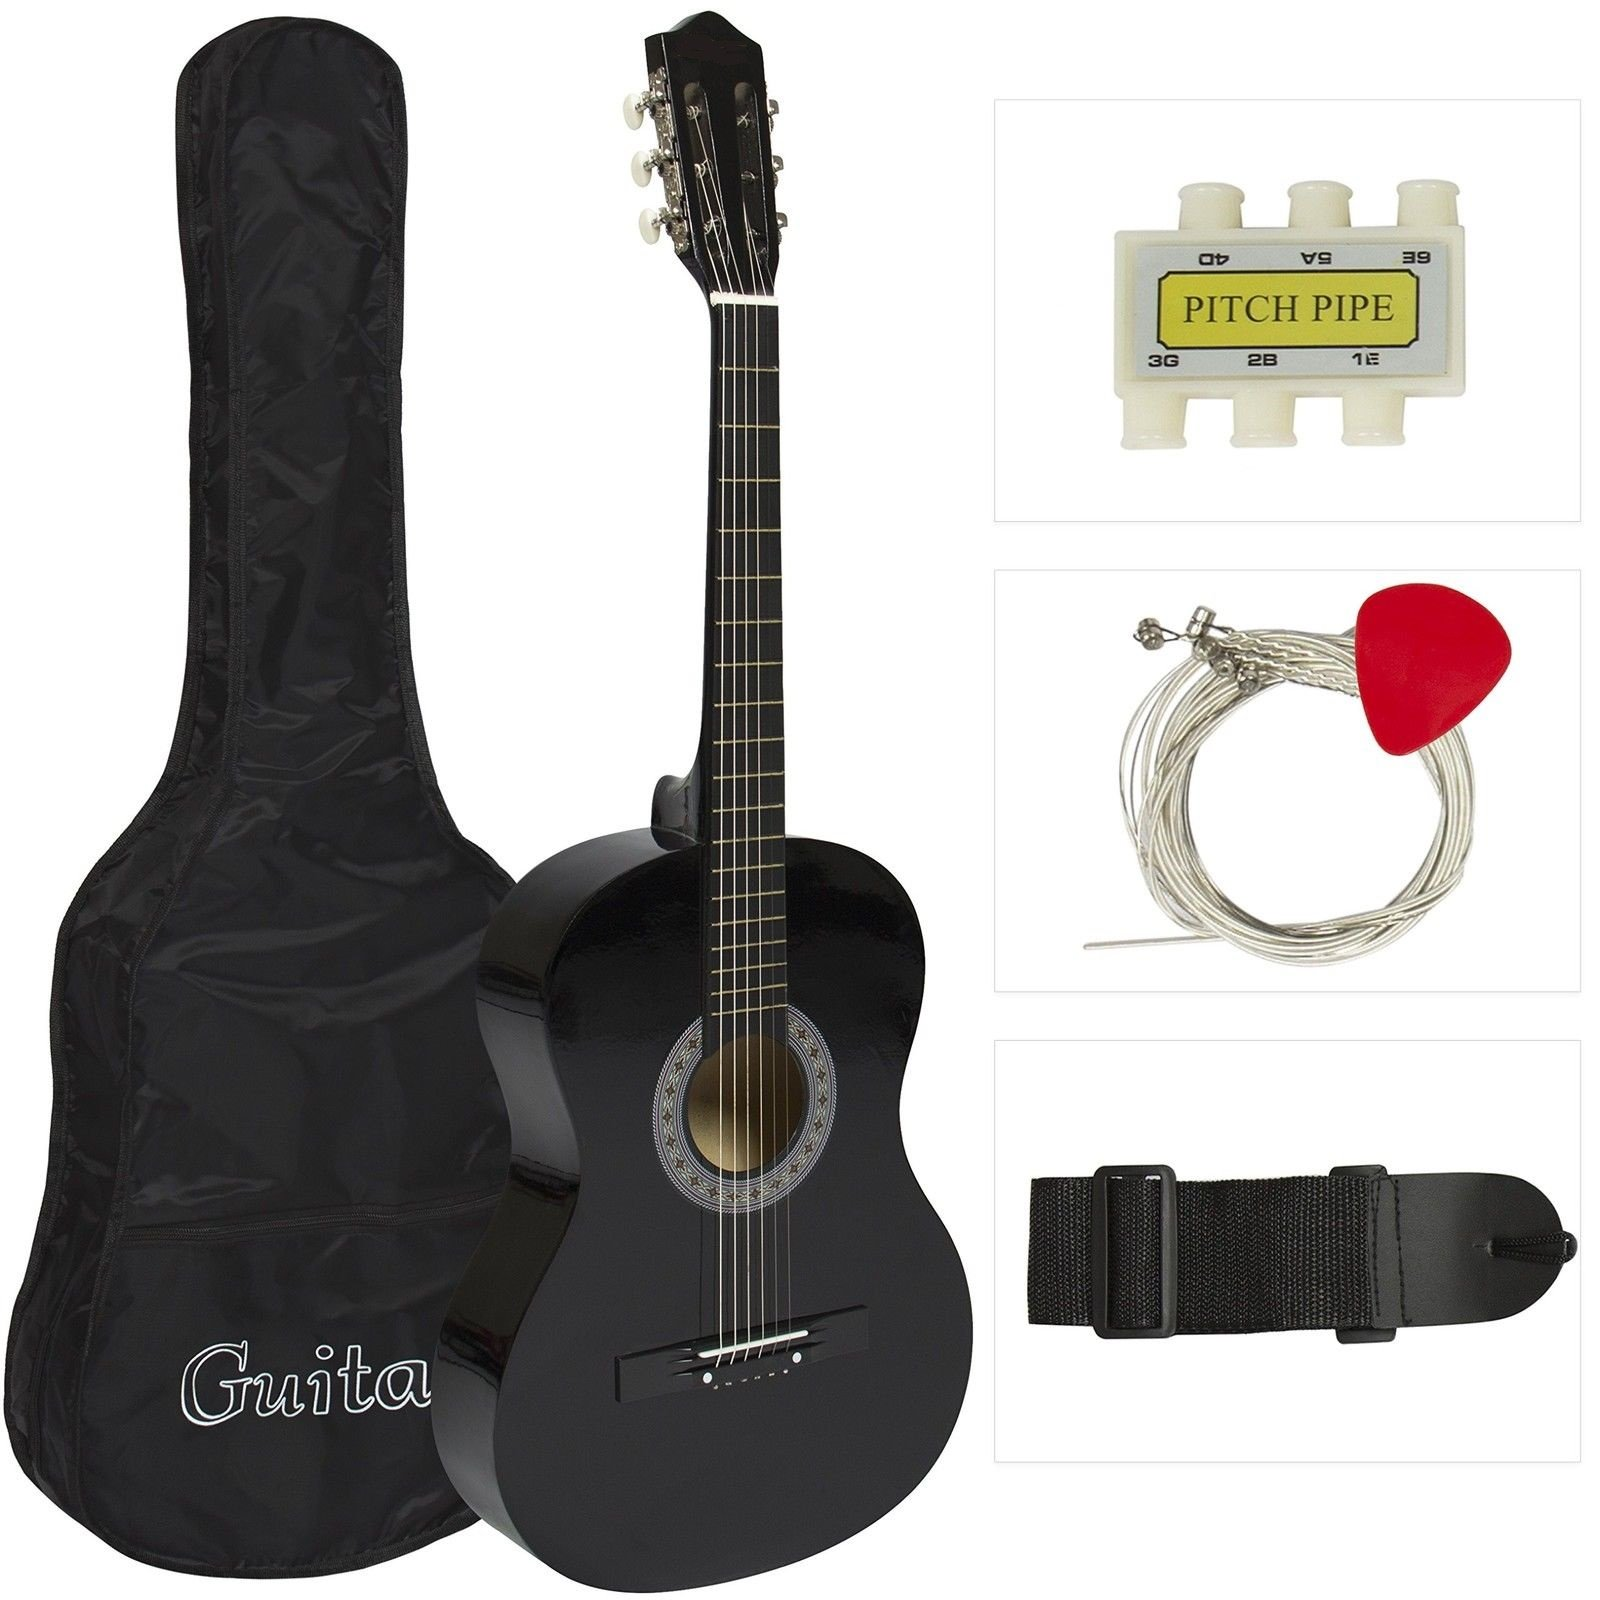 38'' BLACK Acoustic Guitar Starters Beginner Package, Guitars, Gig Bag, Strap, Pitch Pipe Tuner, 2 Pick Guards, Extra String & DirectlyCheap Pick (BK-AG38) [Teacher Approved]